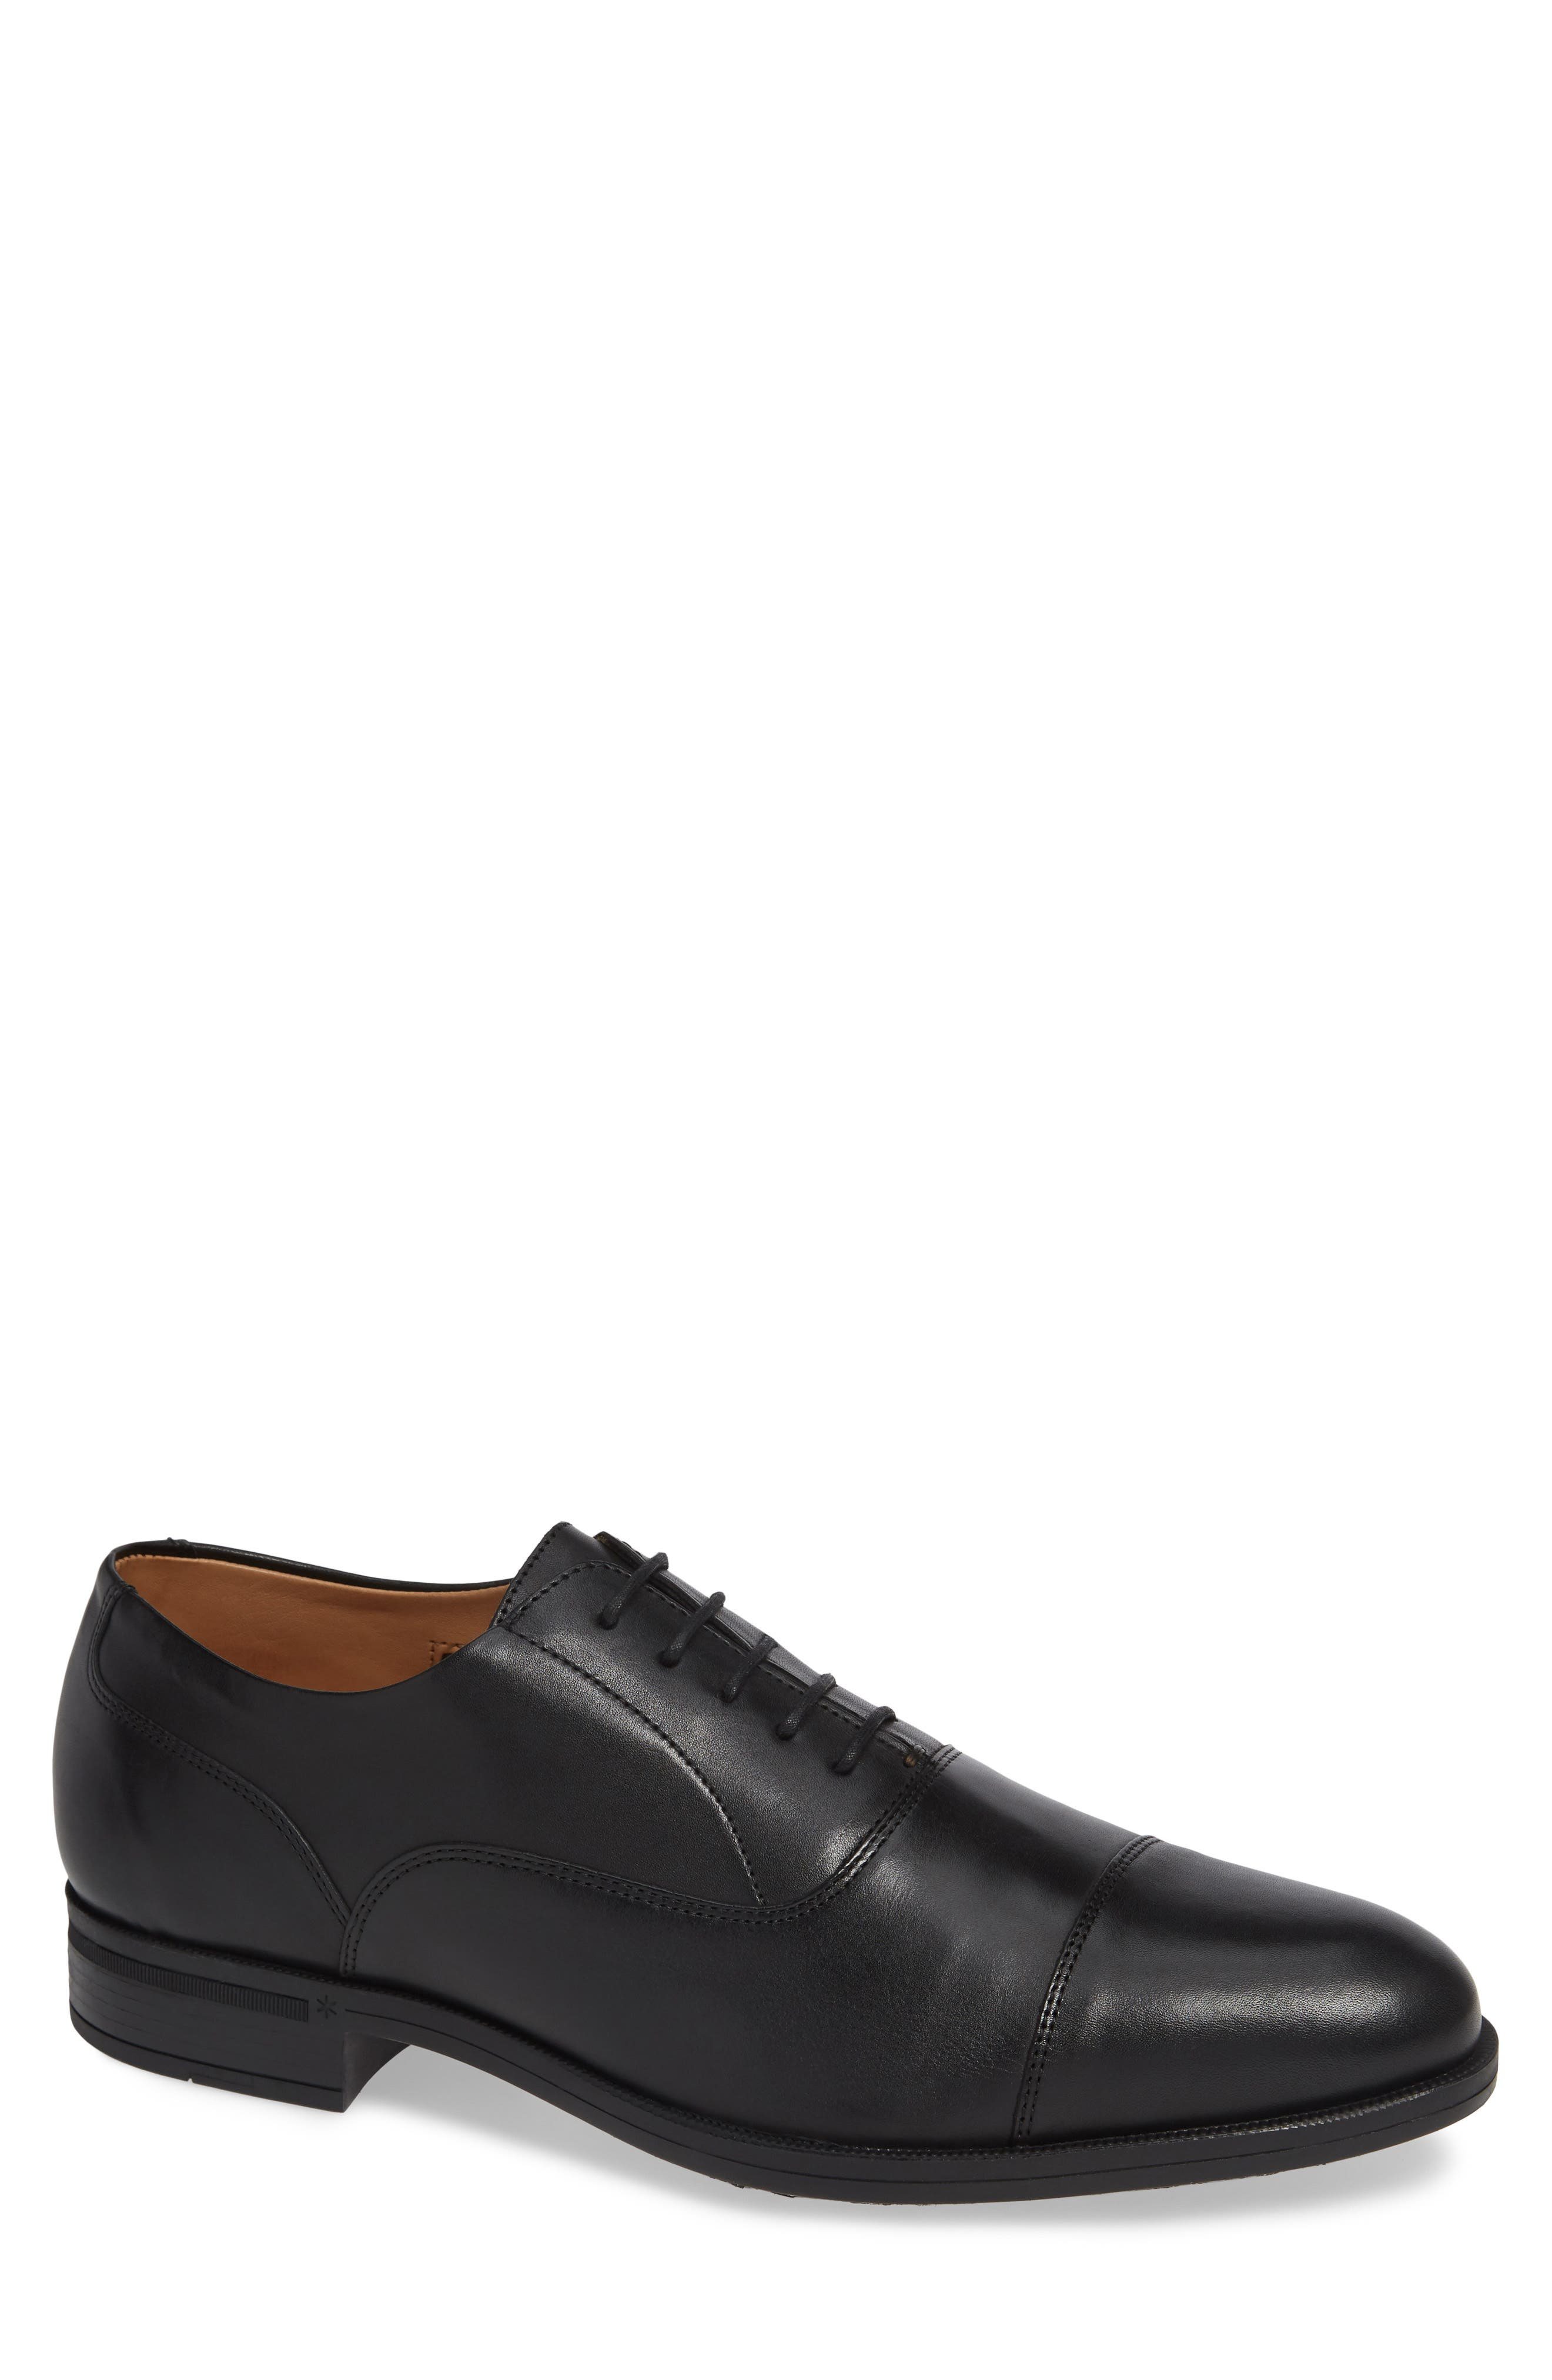 Iven Cap Toe Oxford,                         Main,                         color, BLACK/BLACK LEATHER